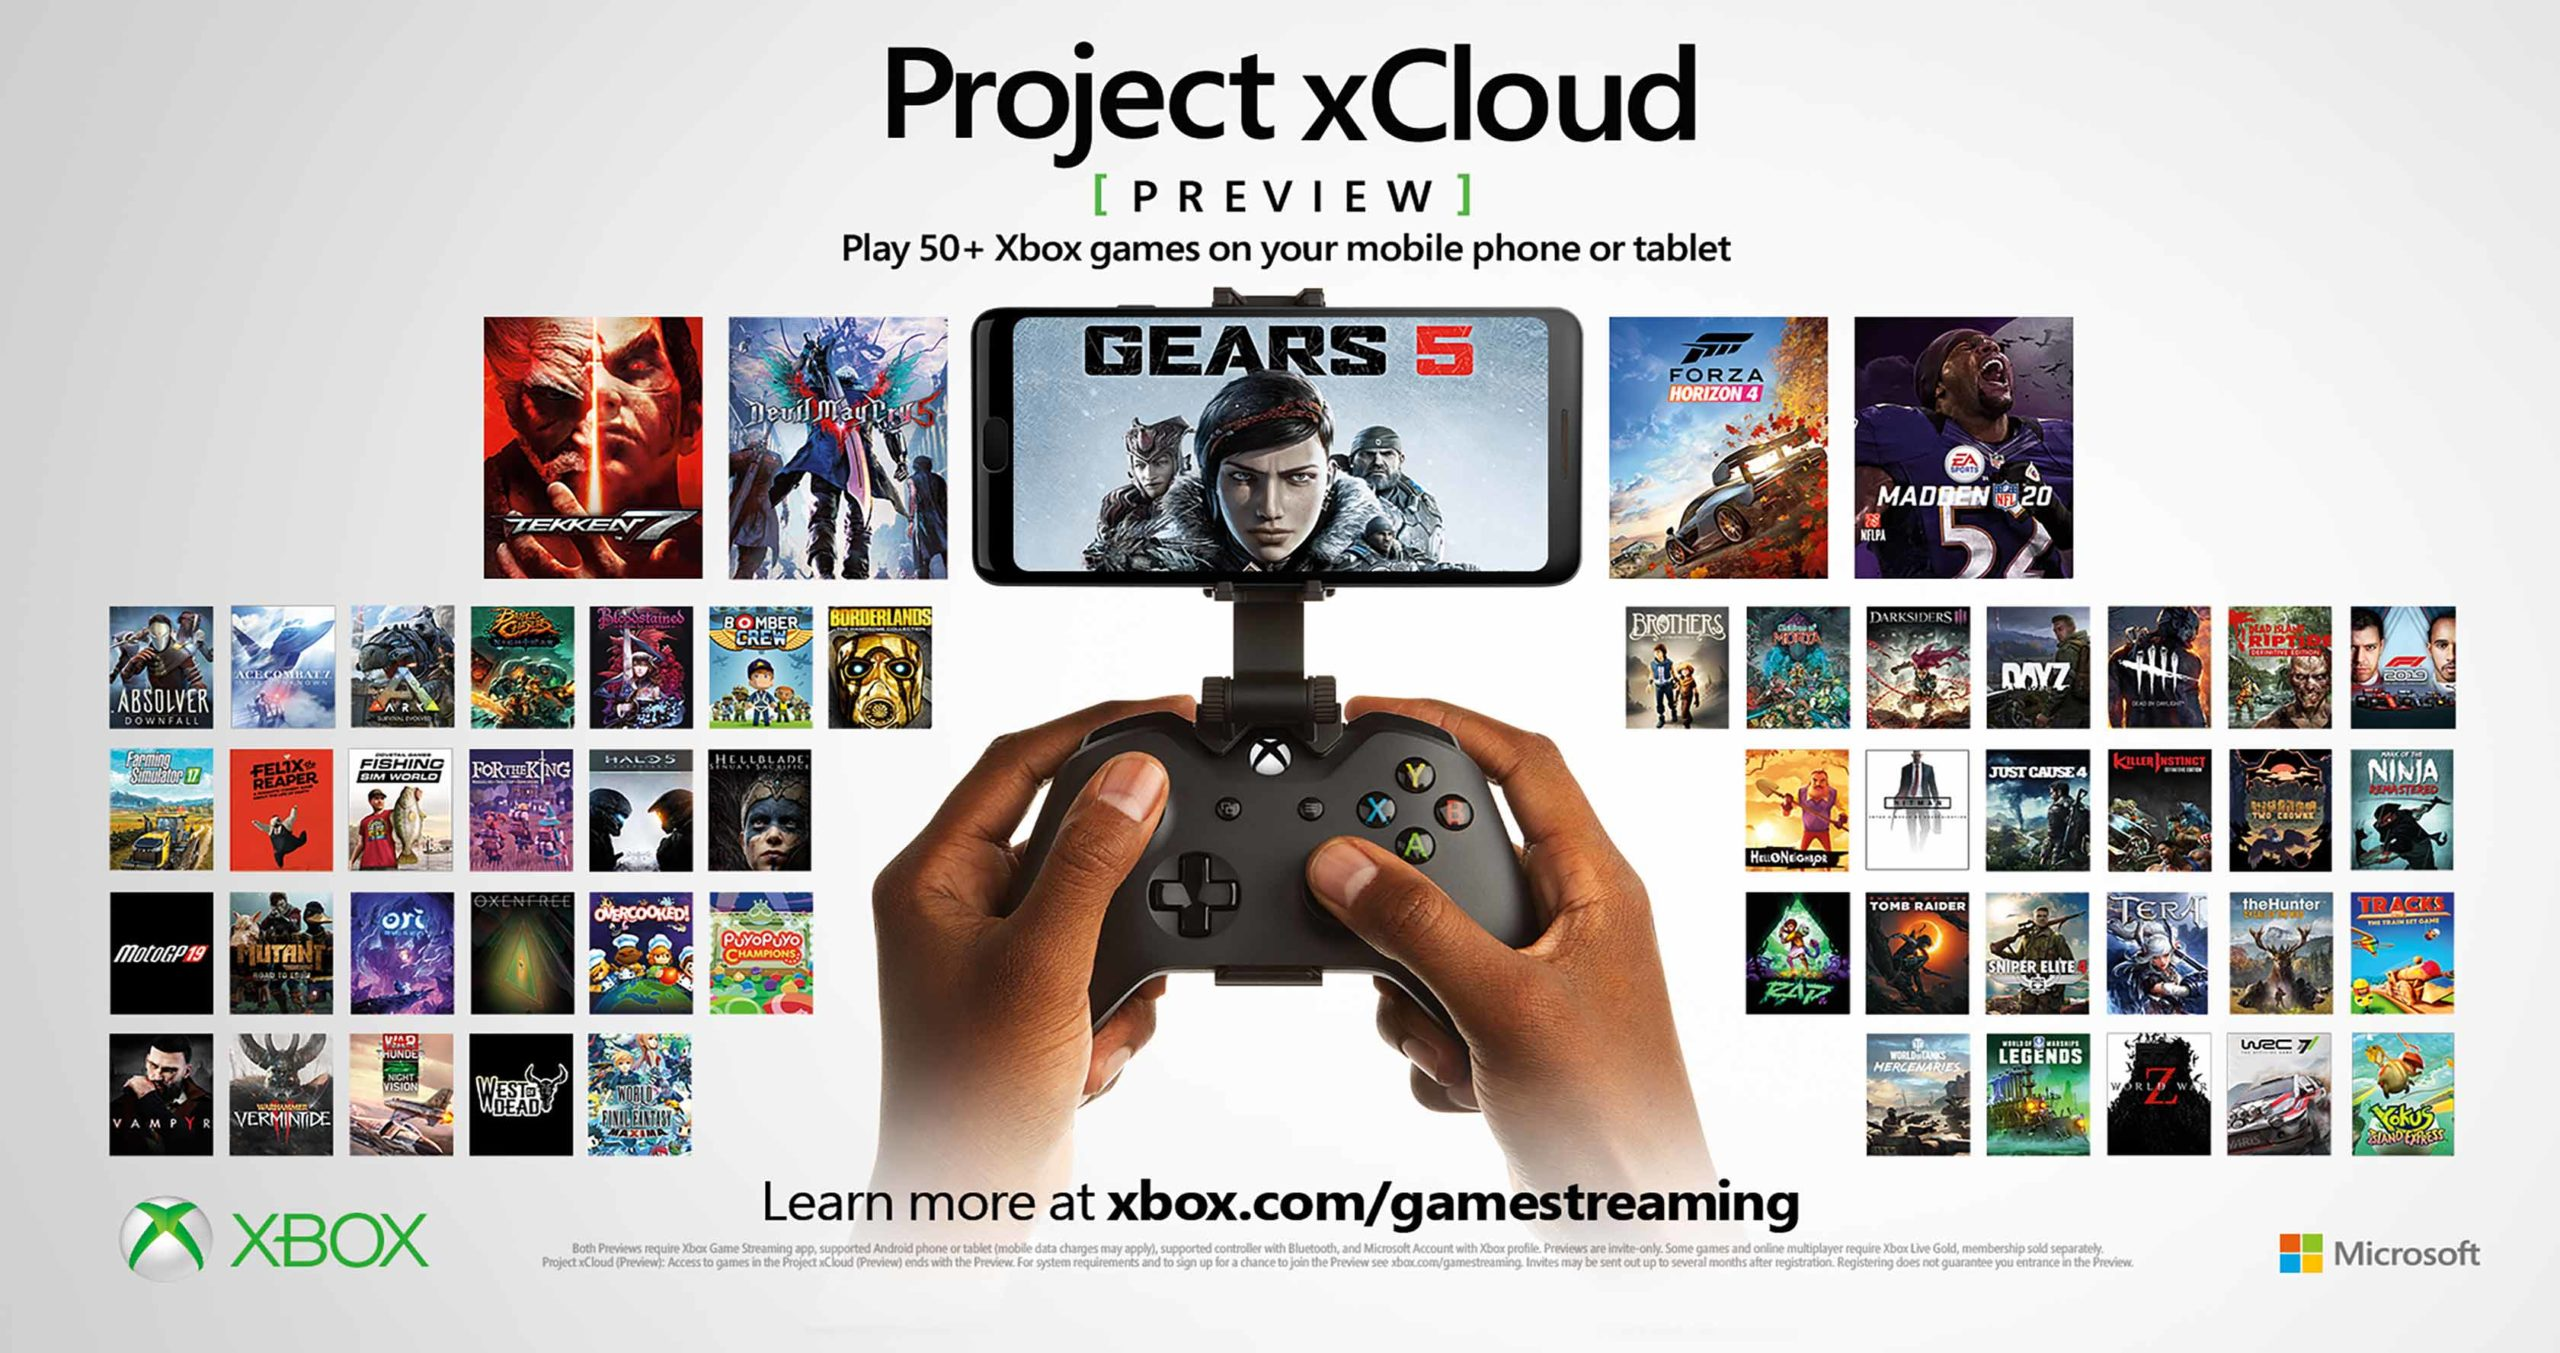 Project xCloud games